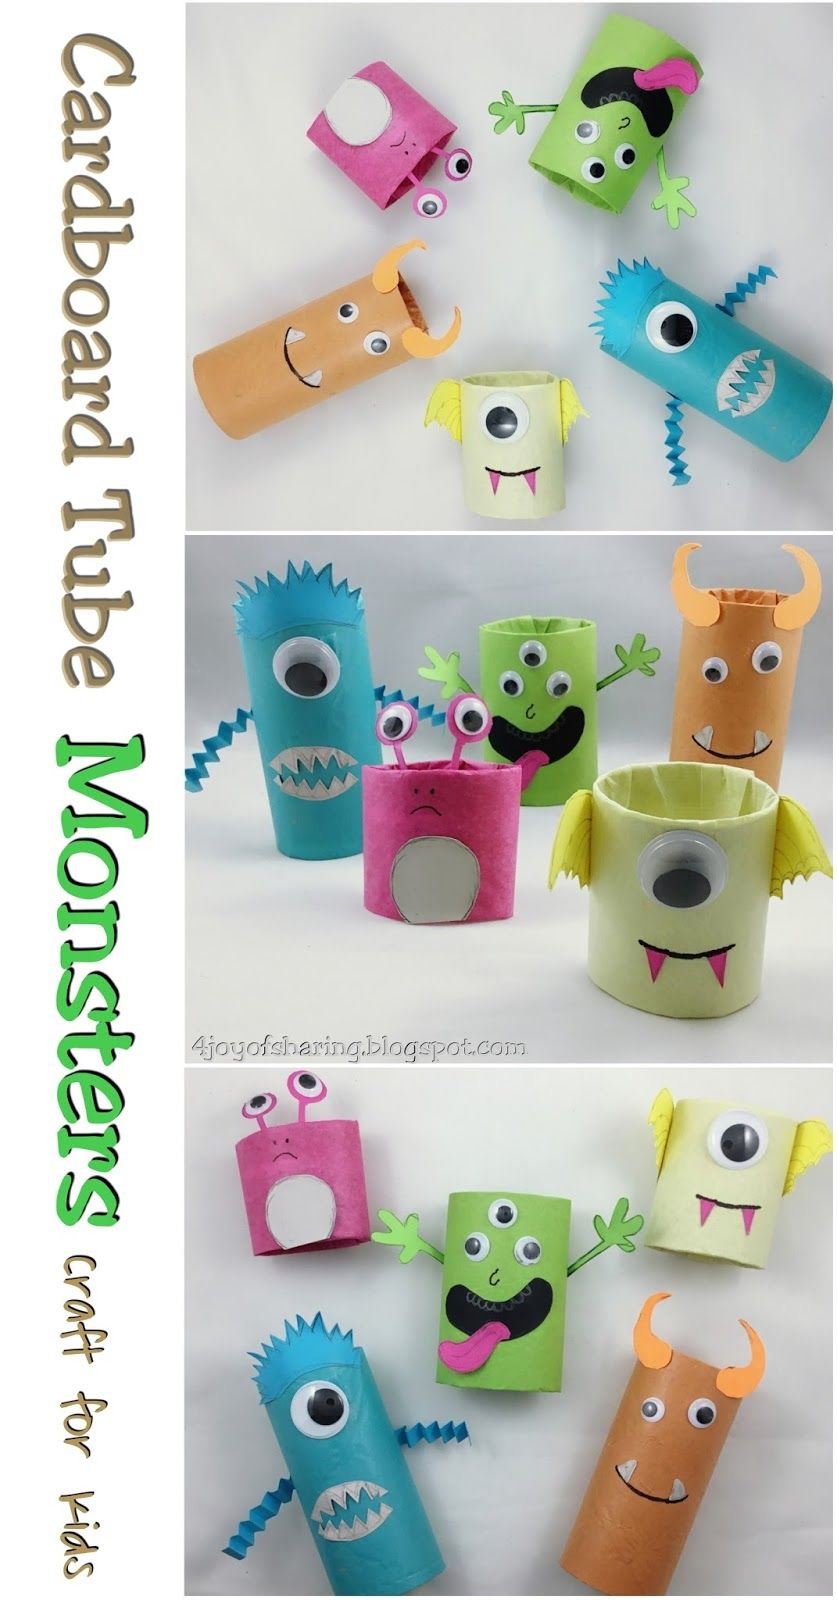 Warm up for Halloween 2017 with these cute little monsters :) #craftsforkids